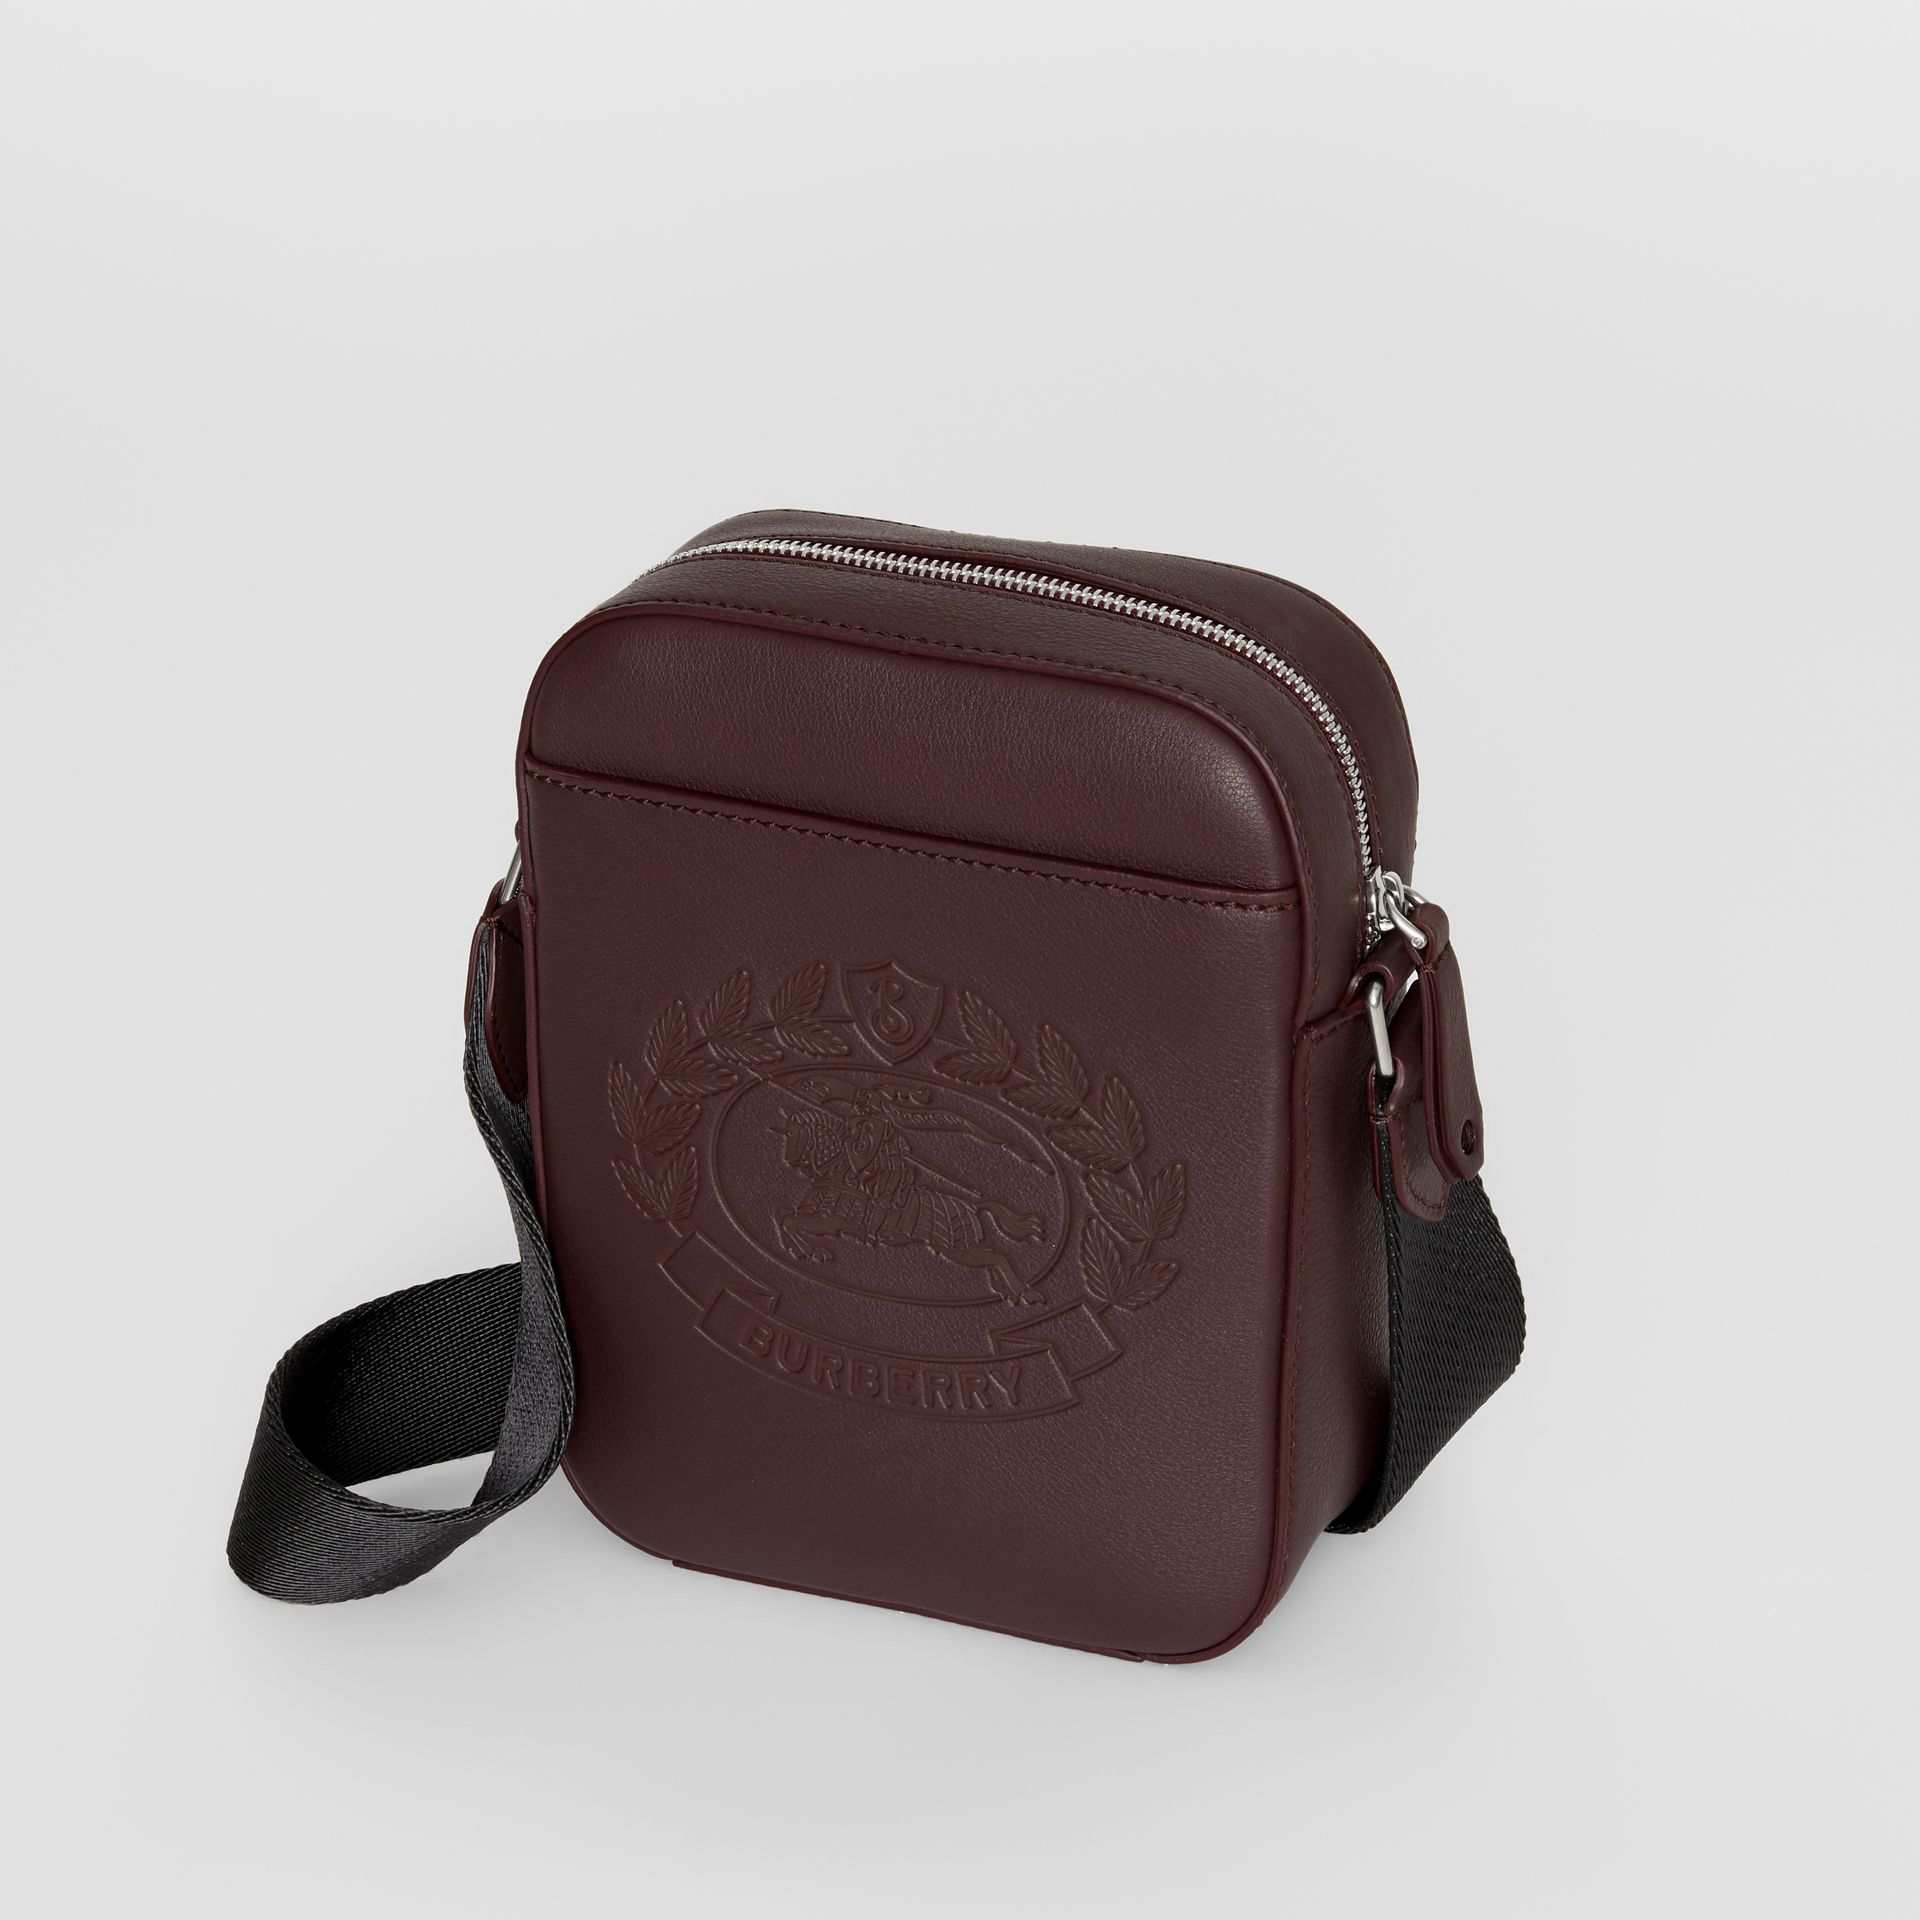 Small Embossed Crest Leather Crossbody Bag in Oxblood - Men | Burberry - gallery image 4